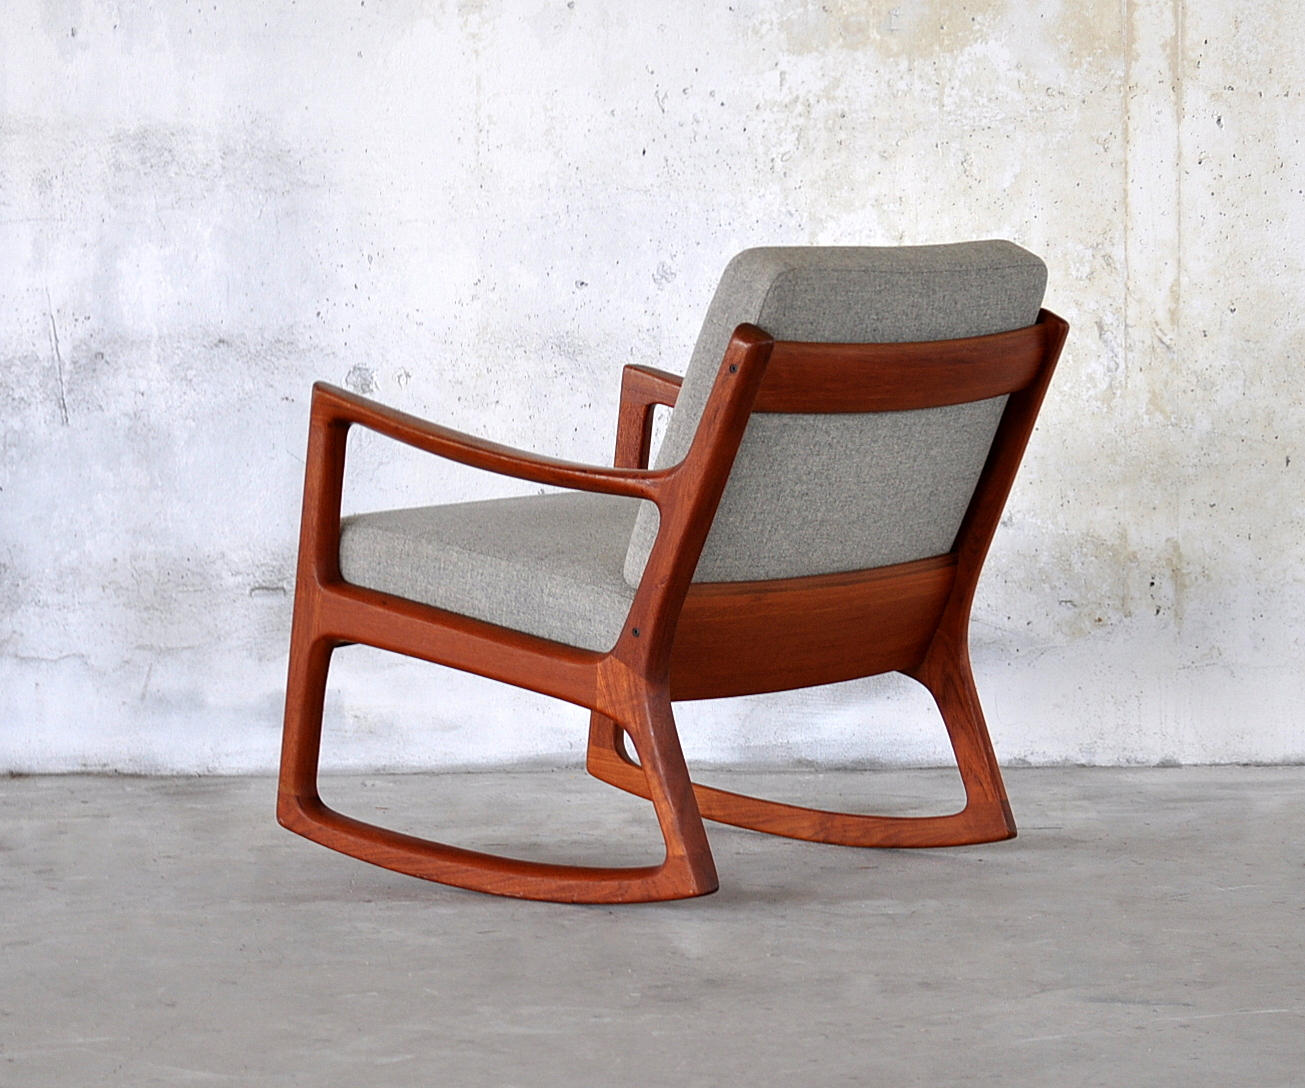 SELECT MODERN Ole Wanscher Teak Rocking Chair